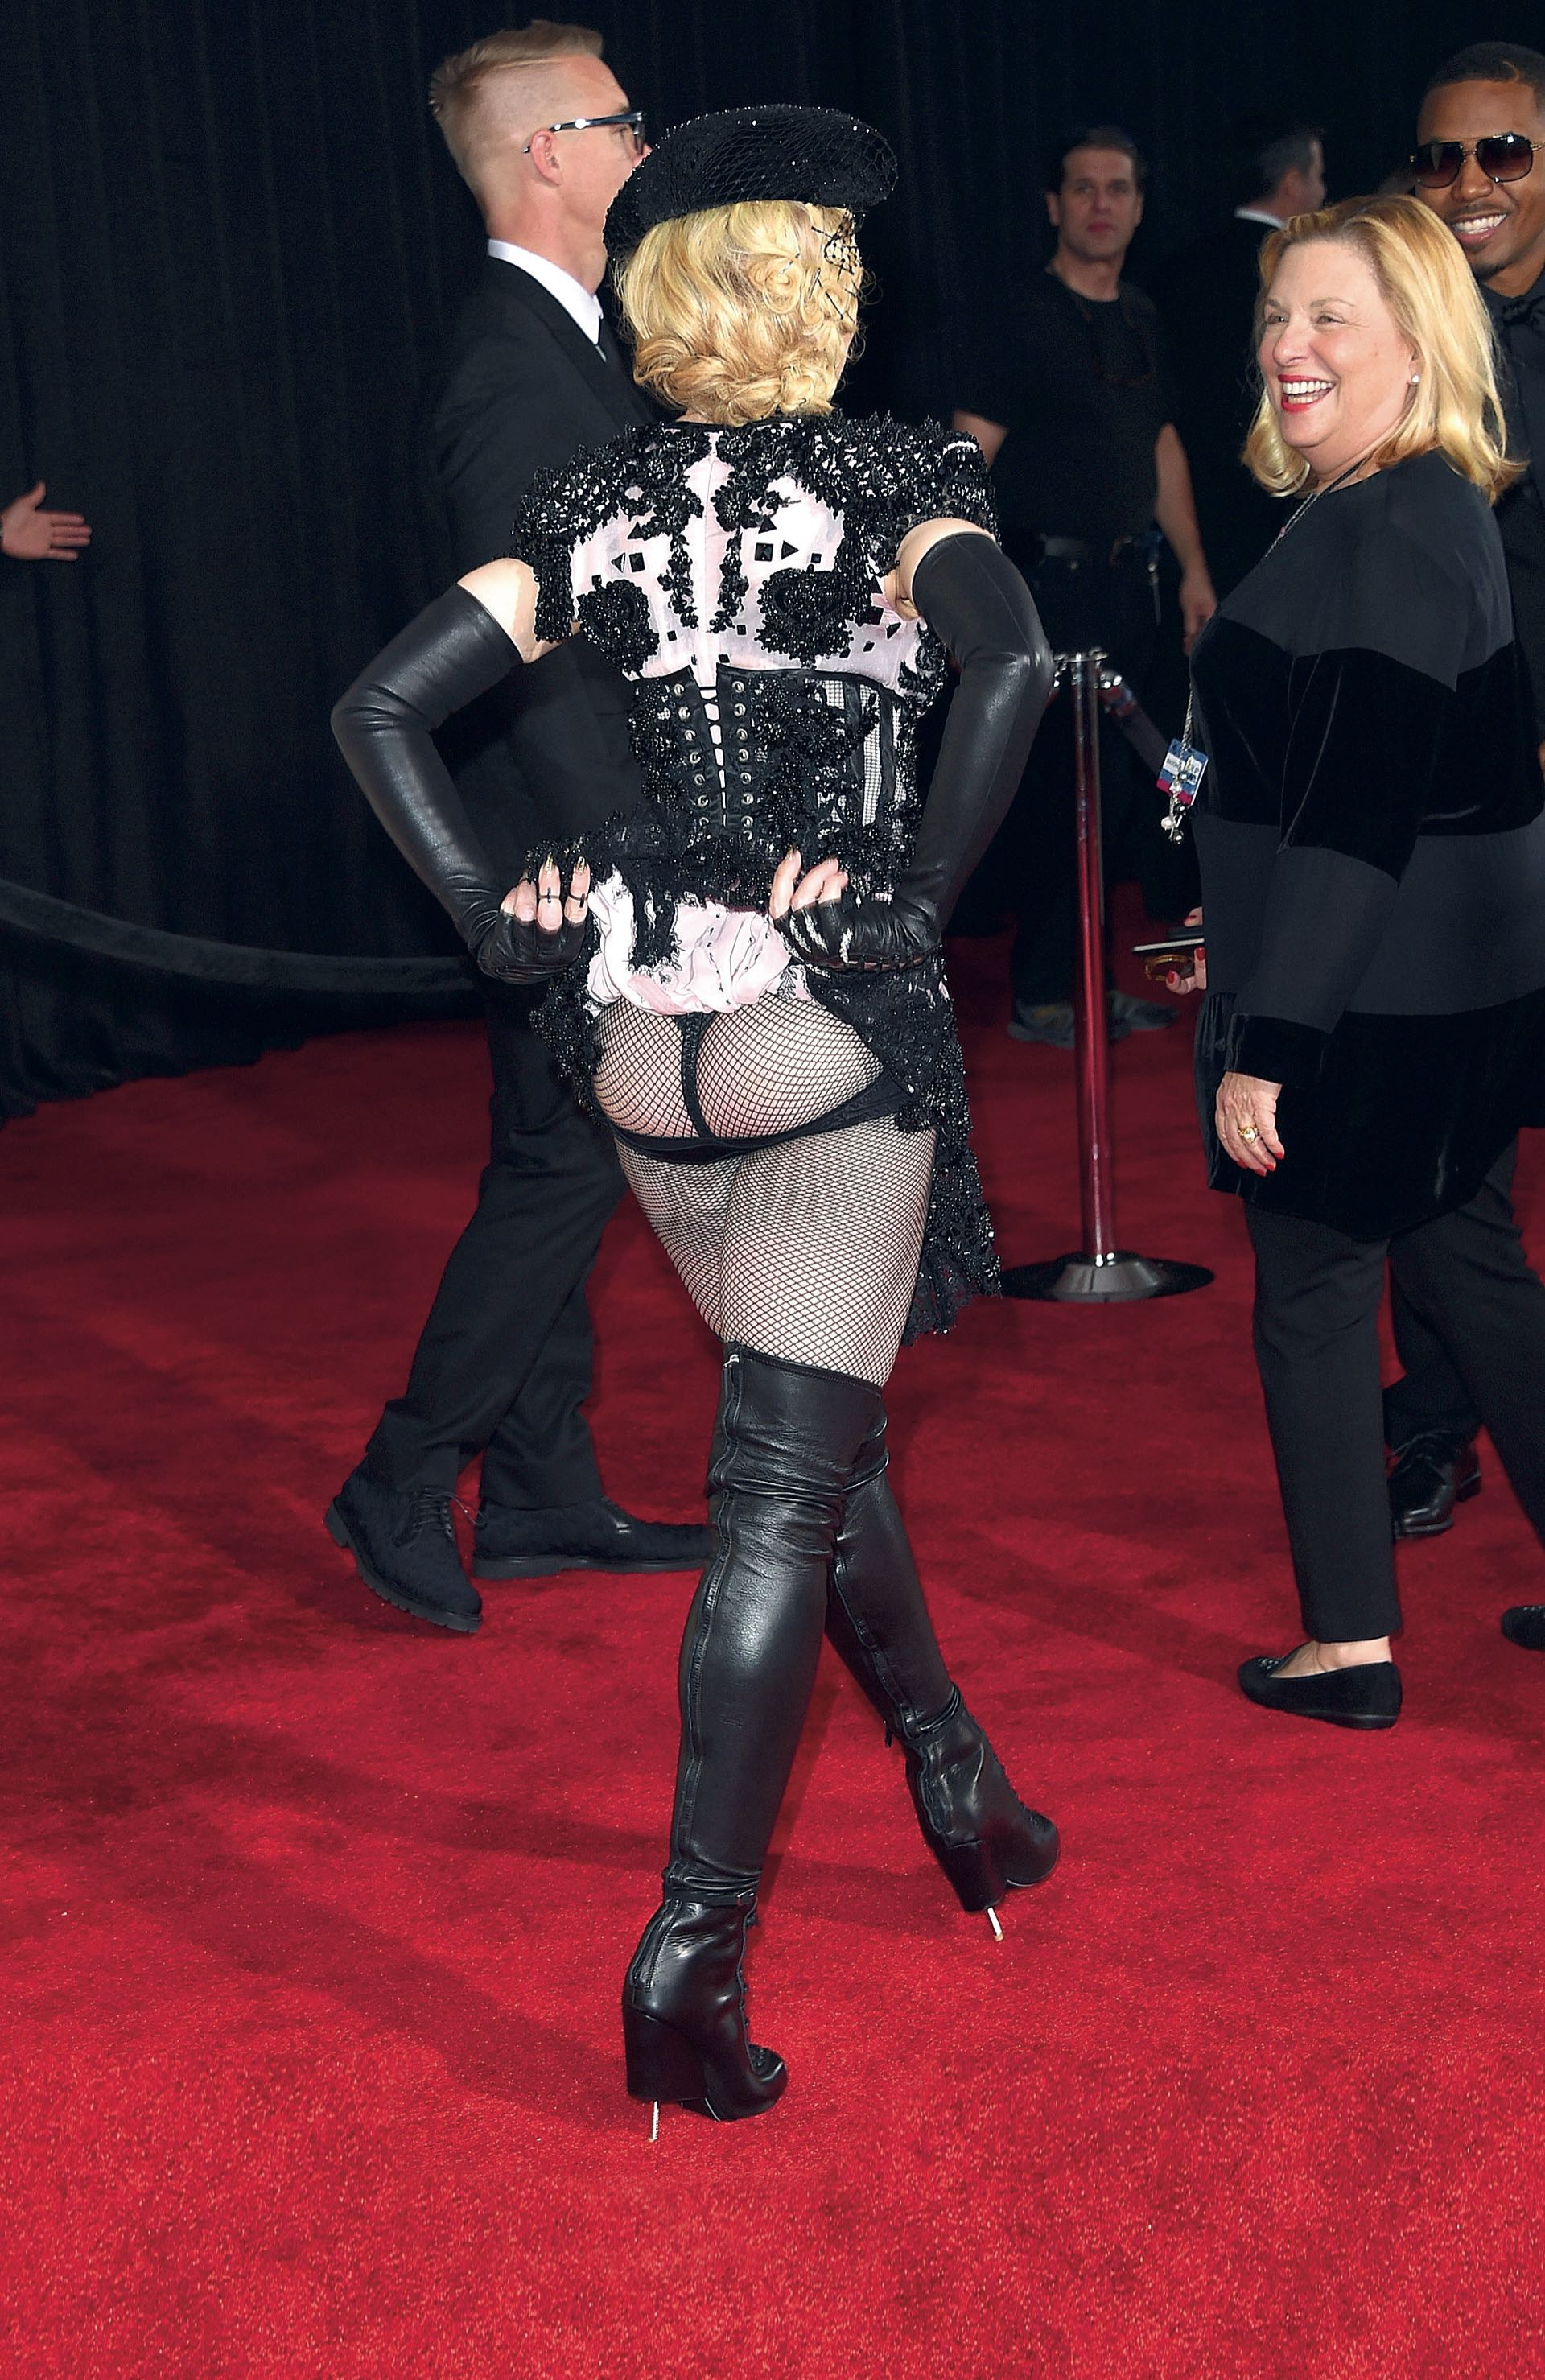 LOS ANGELES, CA – FEBRUARY 08: Singer Madonna attends The 57th Annual GRAMMY Awards at the STAPLES Center on February 8, 2015 in Los Angeles, California. Jason Merritt/Getty Images/AFP